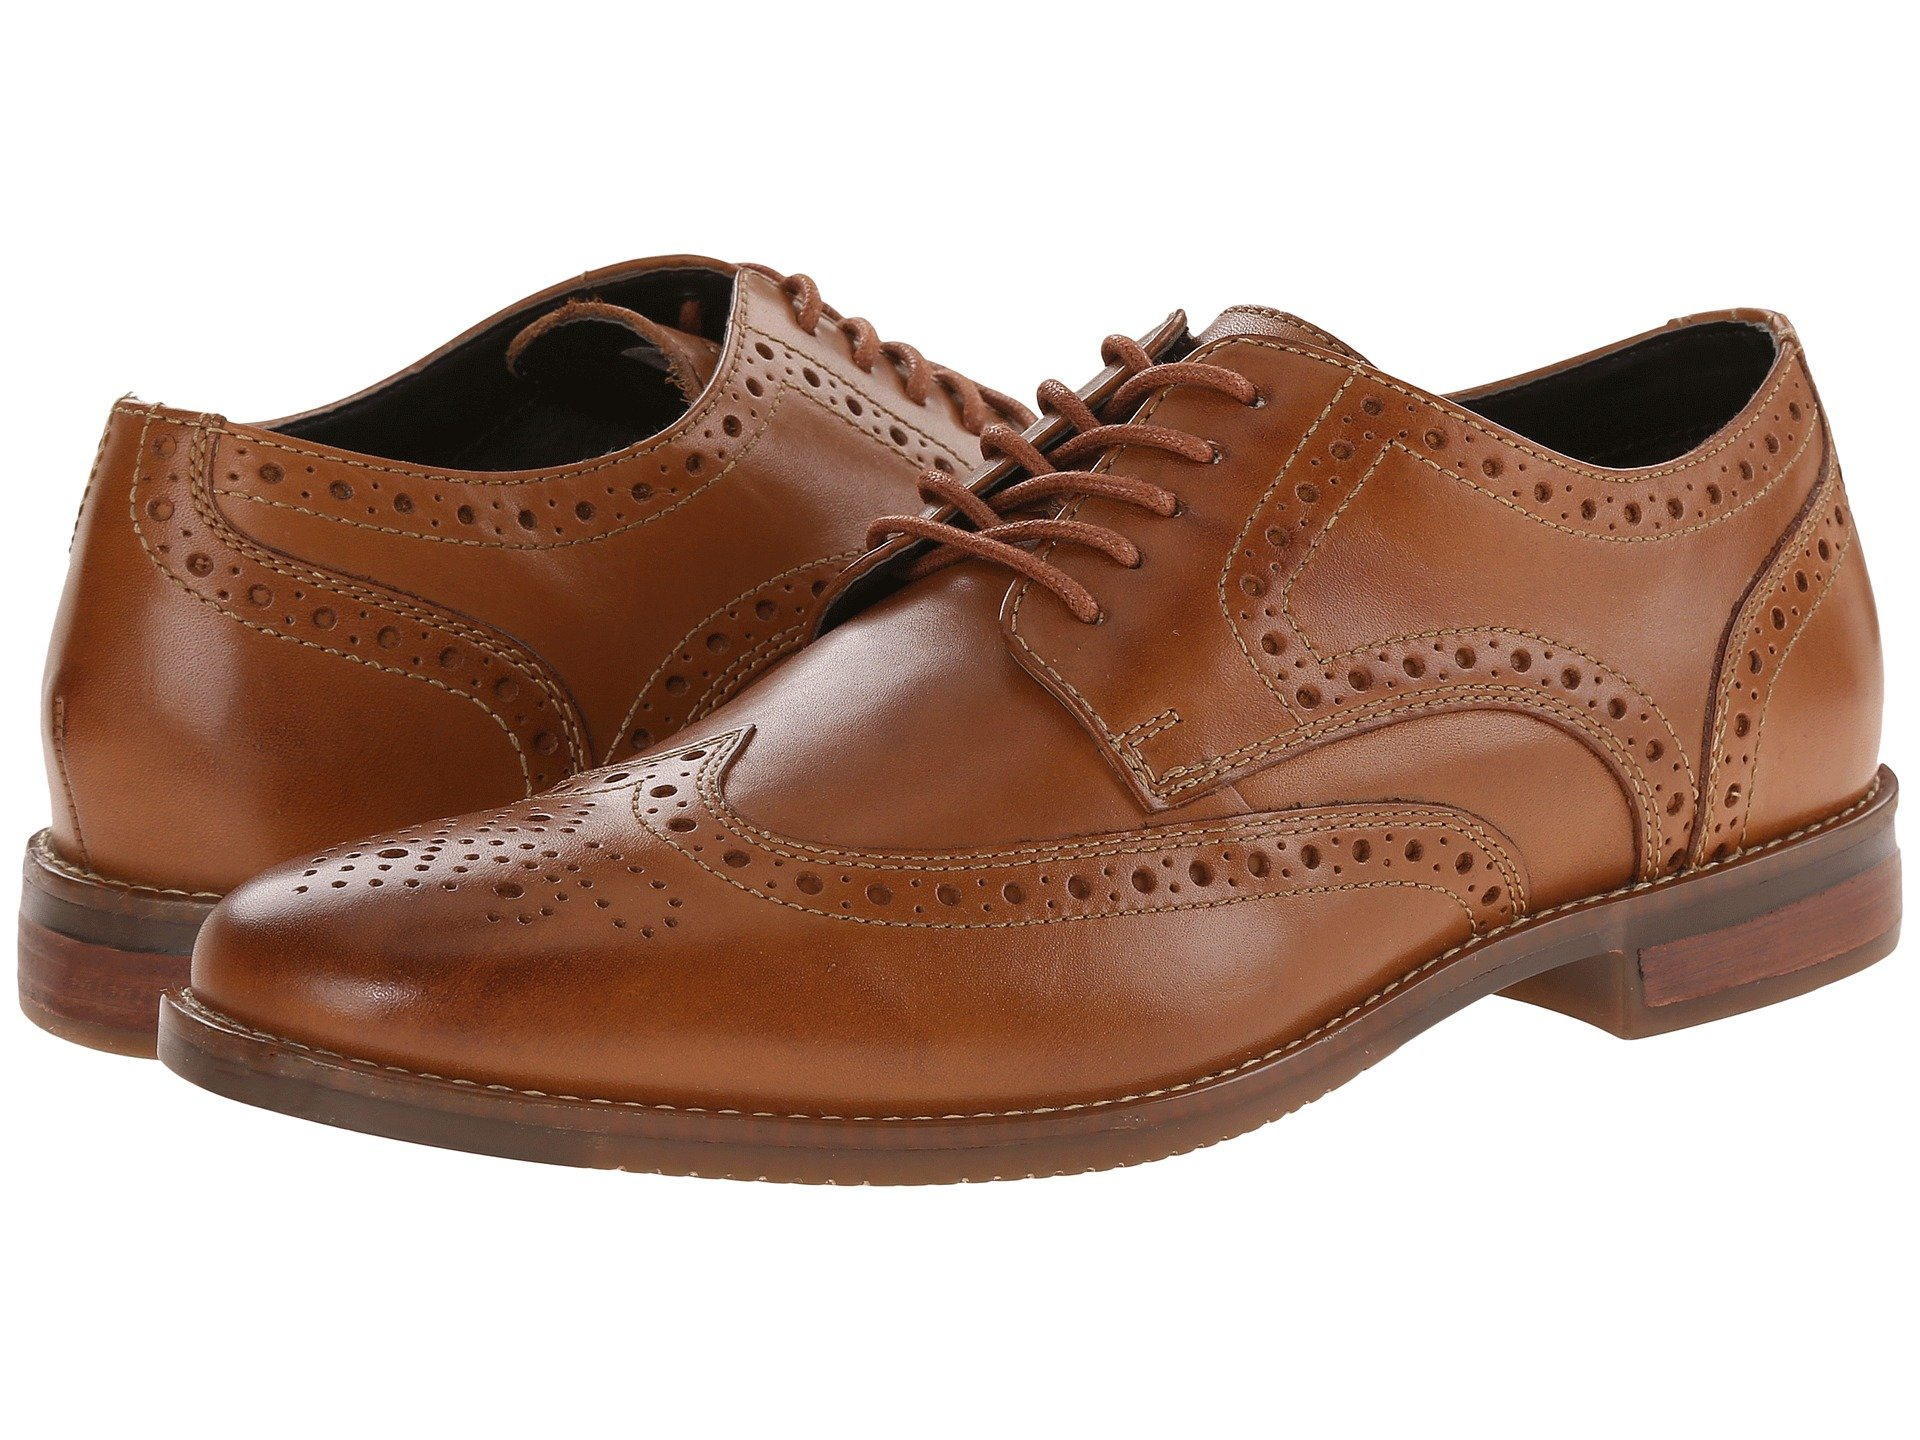 c0726488c16 Men s Oxfords